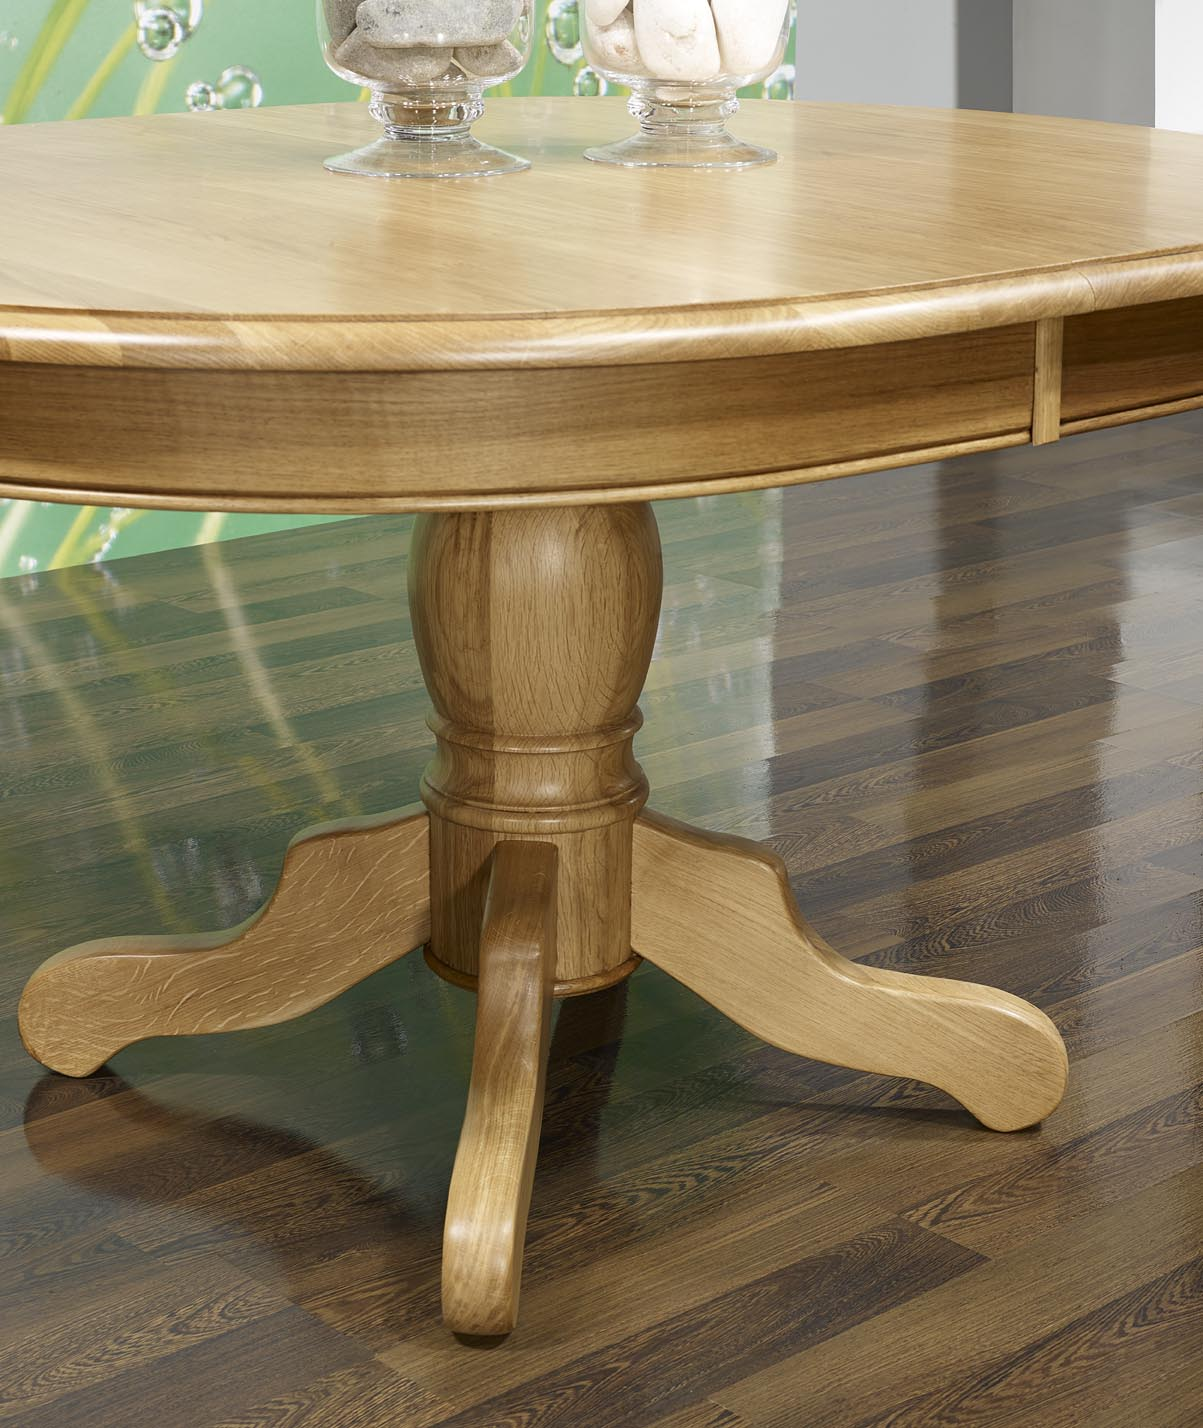 Table Ovale Pied Central Jerome Realisee En Chene Massif De Style